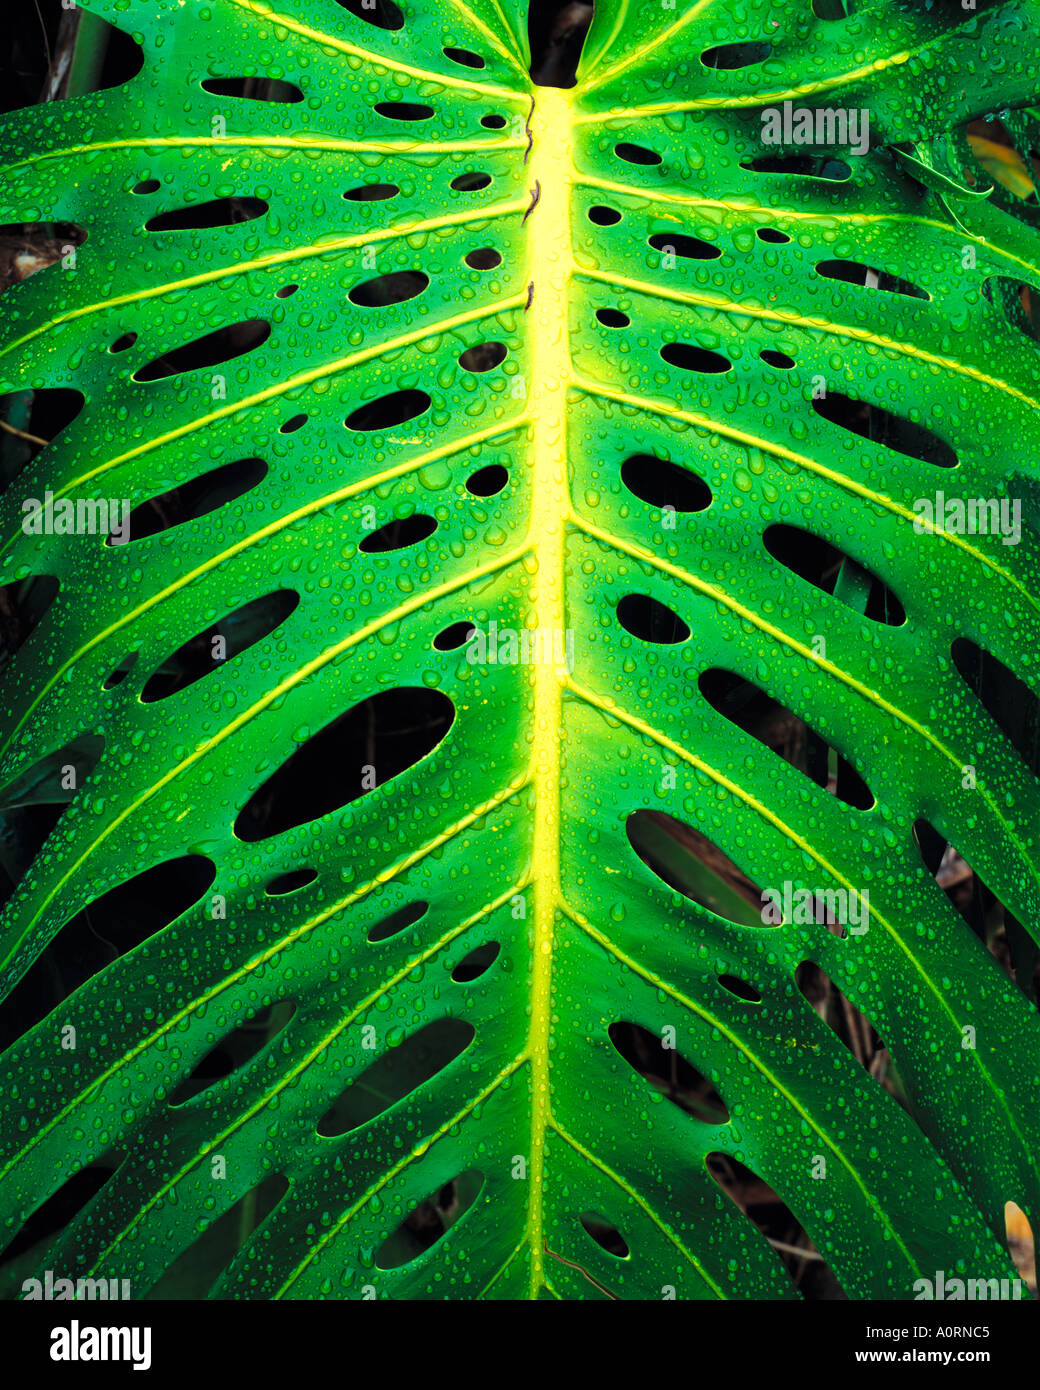 Monstera Plant in Rain Iao Valley State Park Maui Hawaii - Stock Image